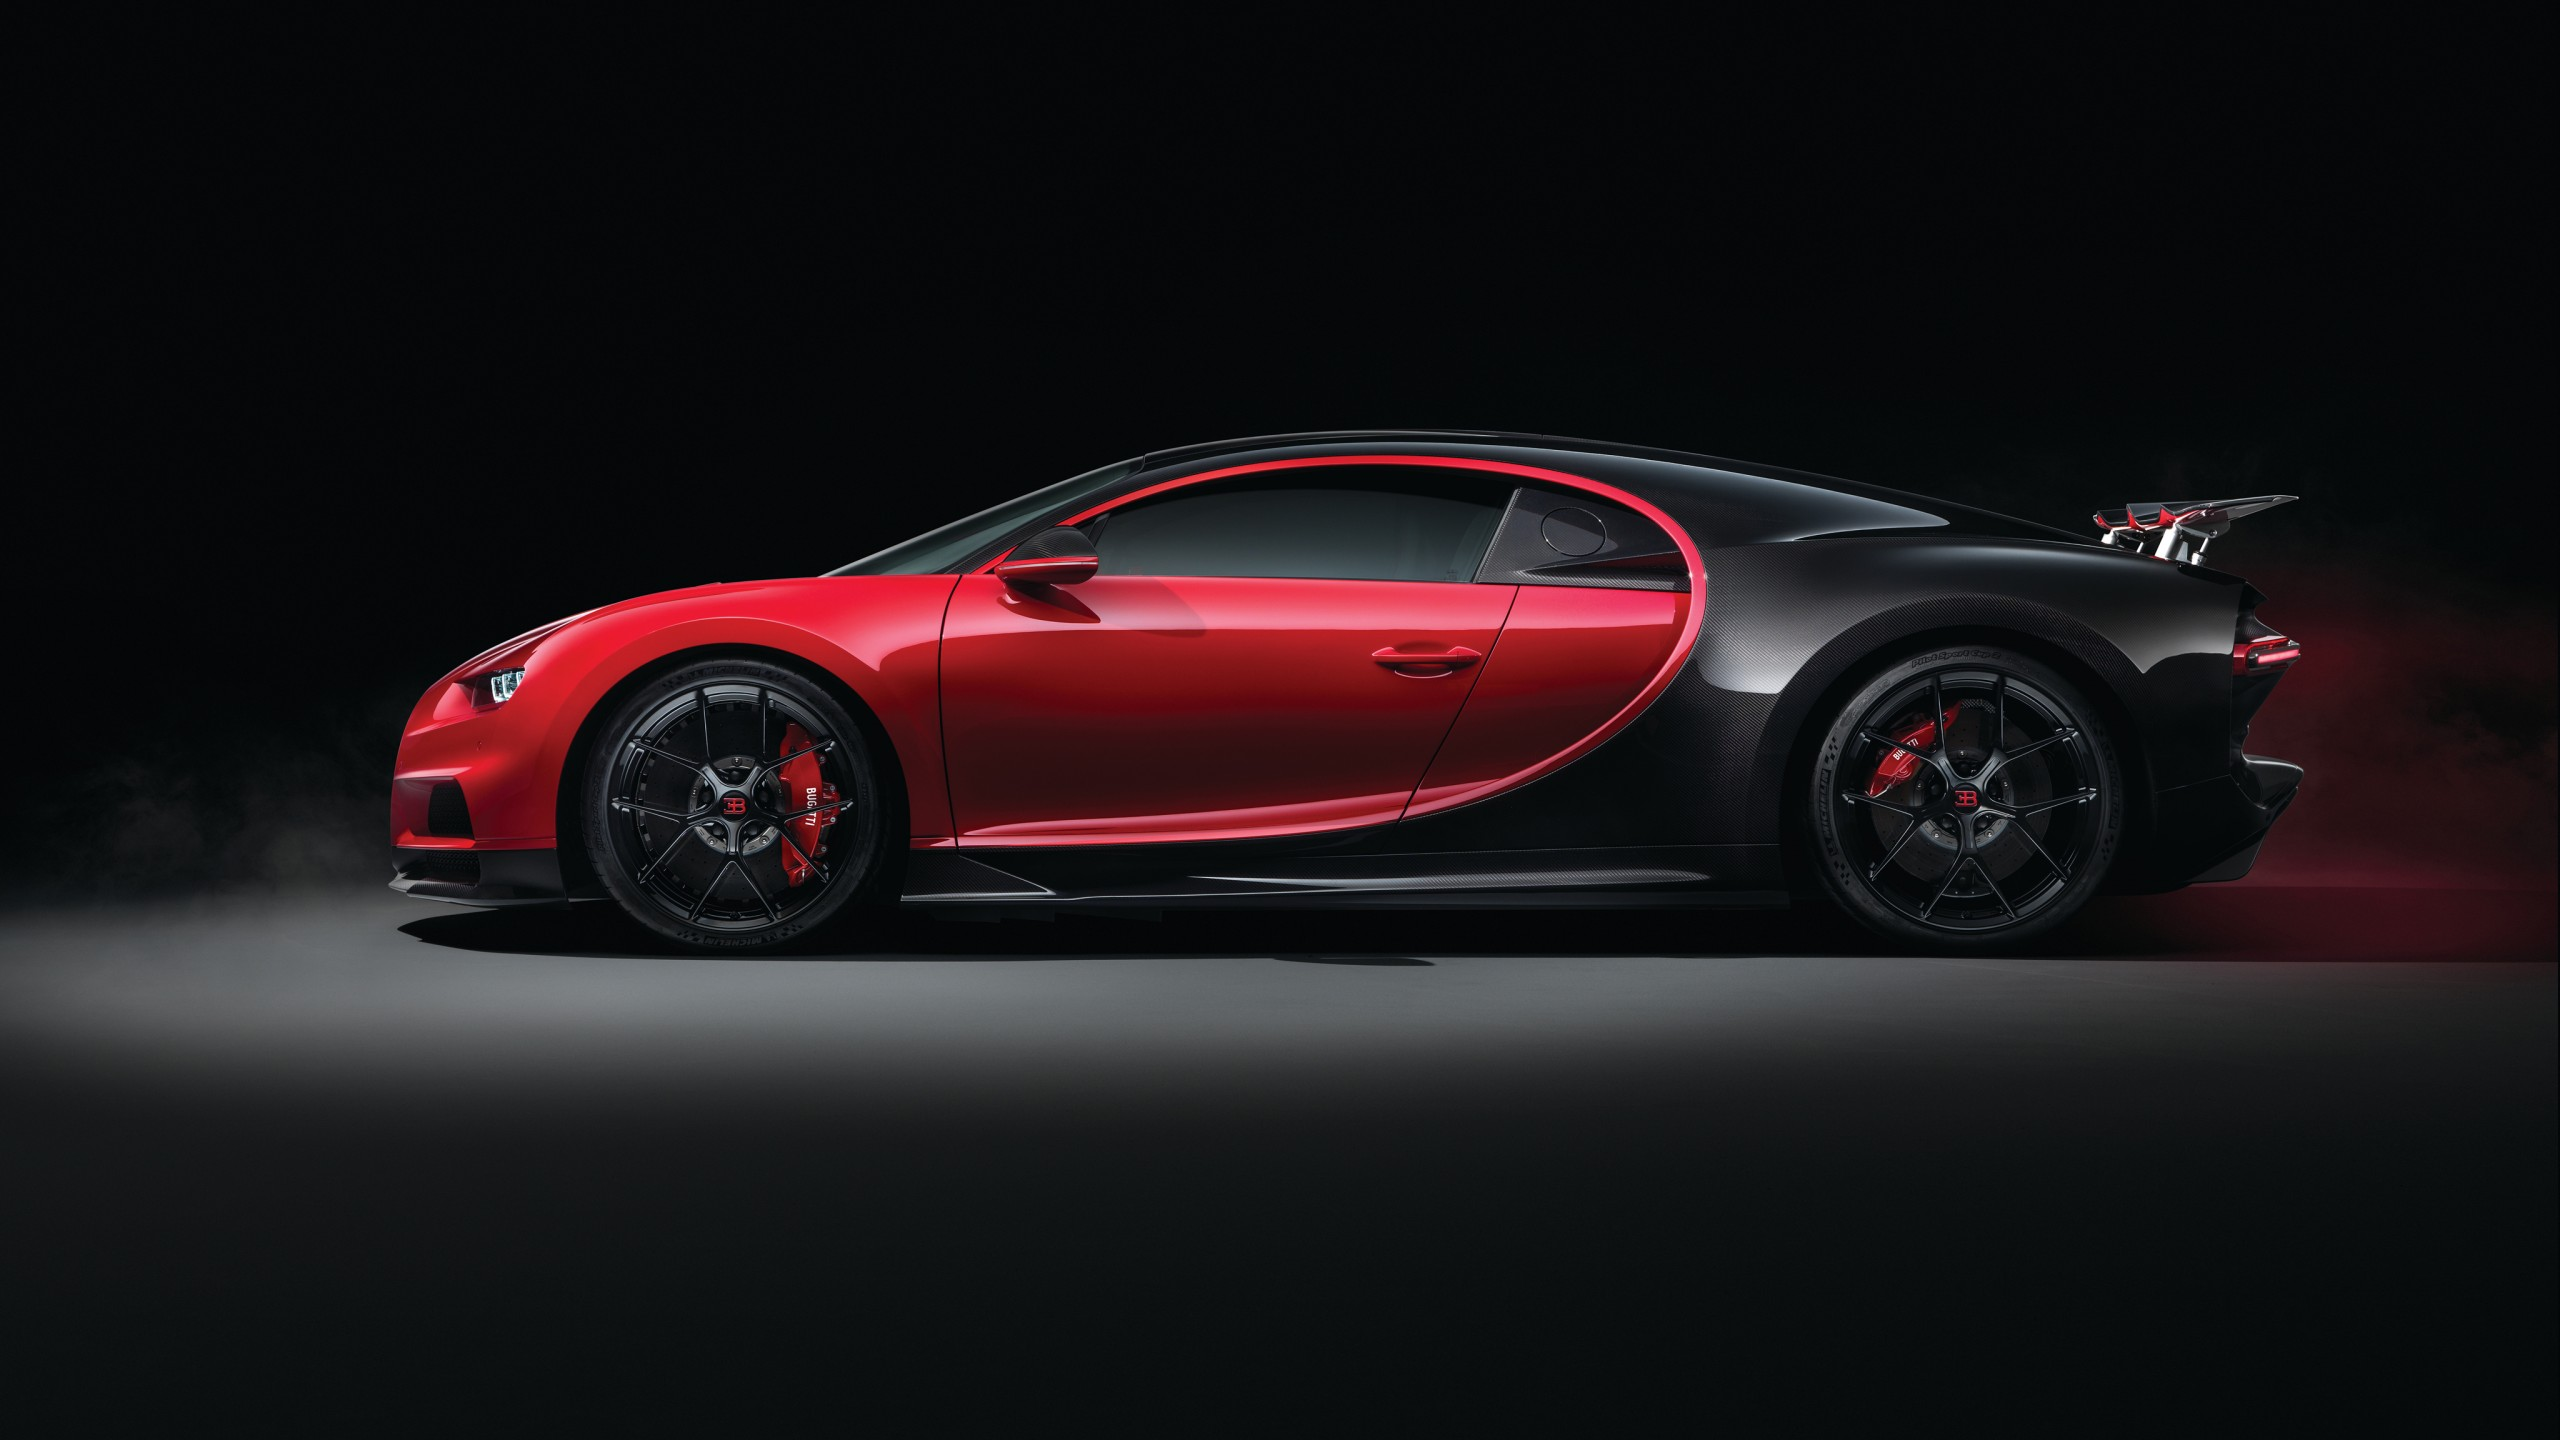 Www Hummer Car Wallpapers Com 2018 Bugatti Chiron Sport 4k 3 Wallpaper Hd Car